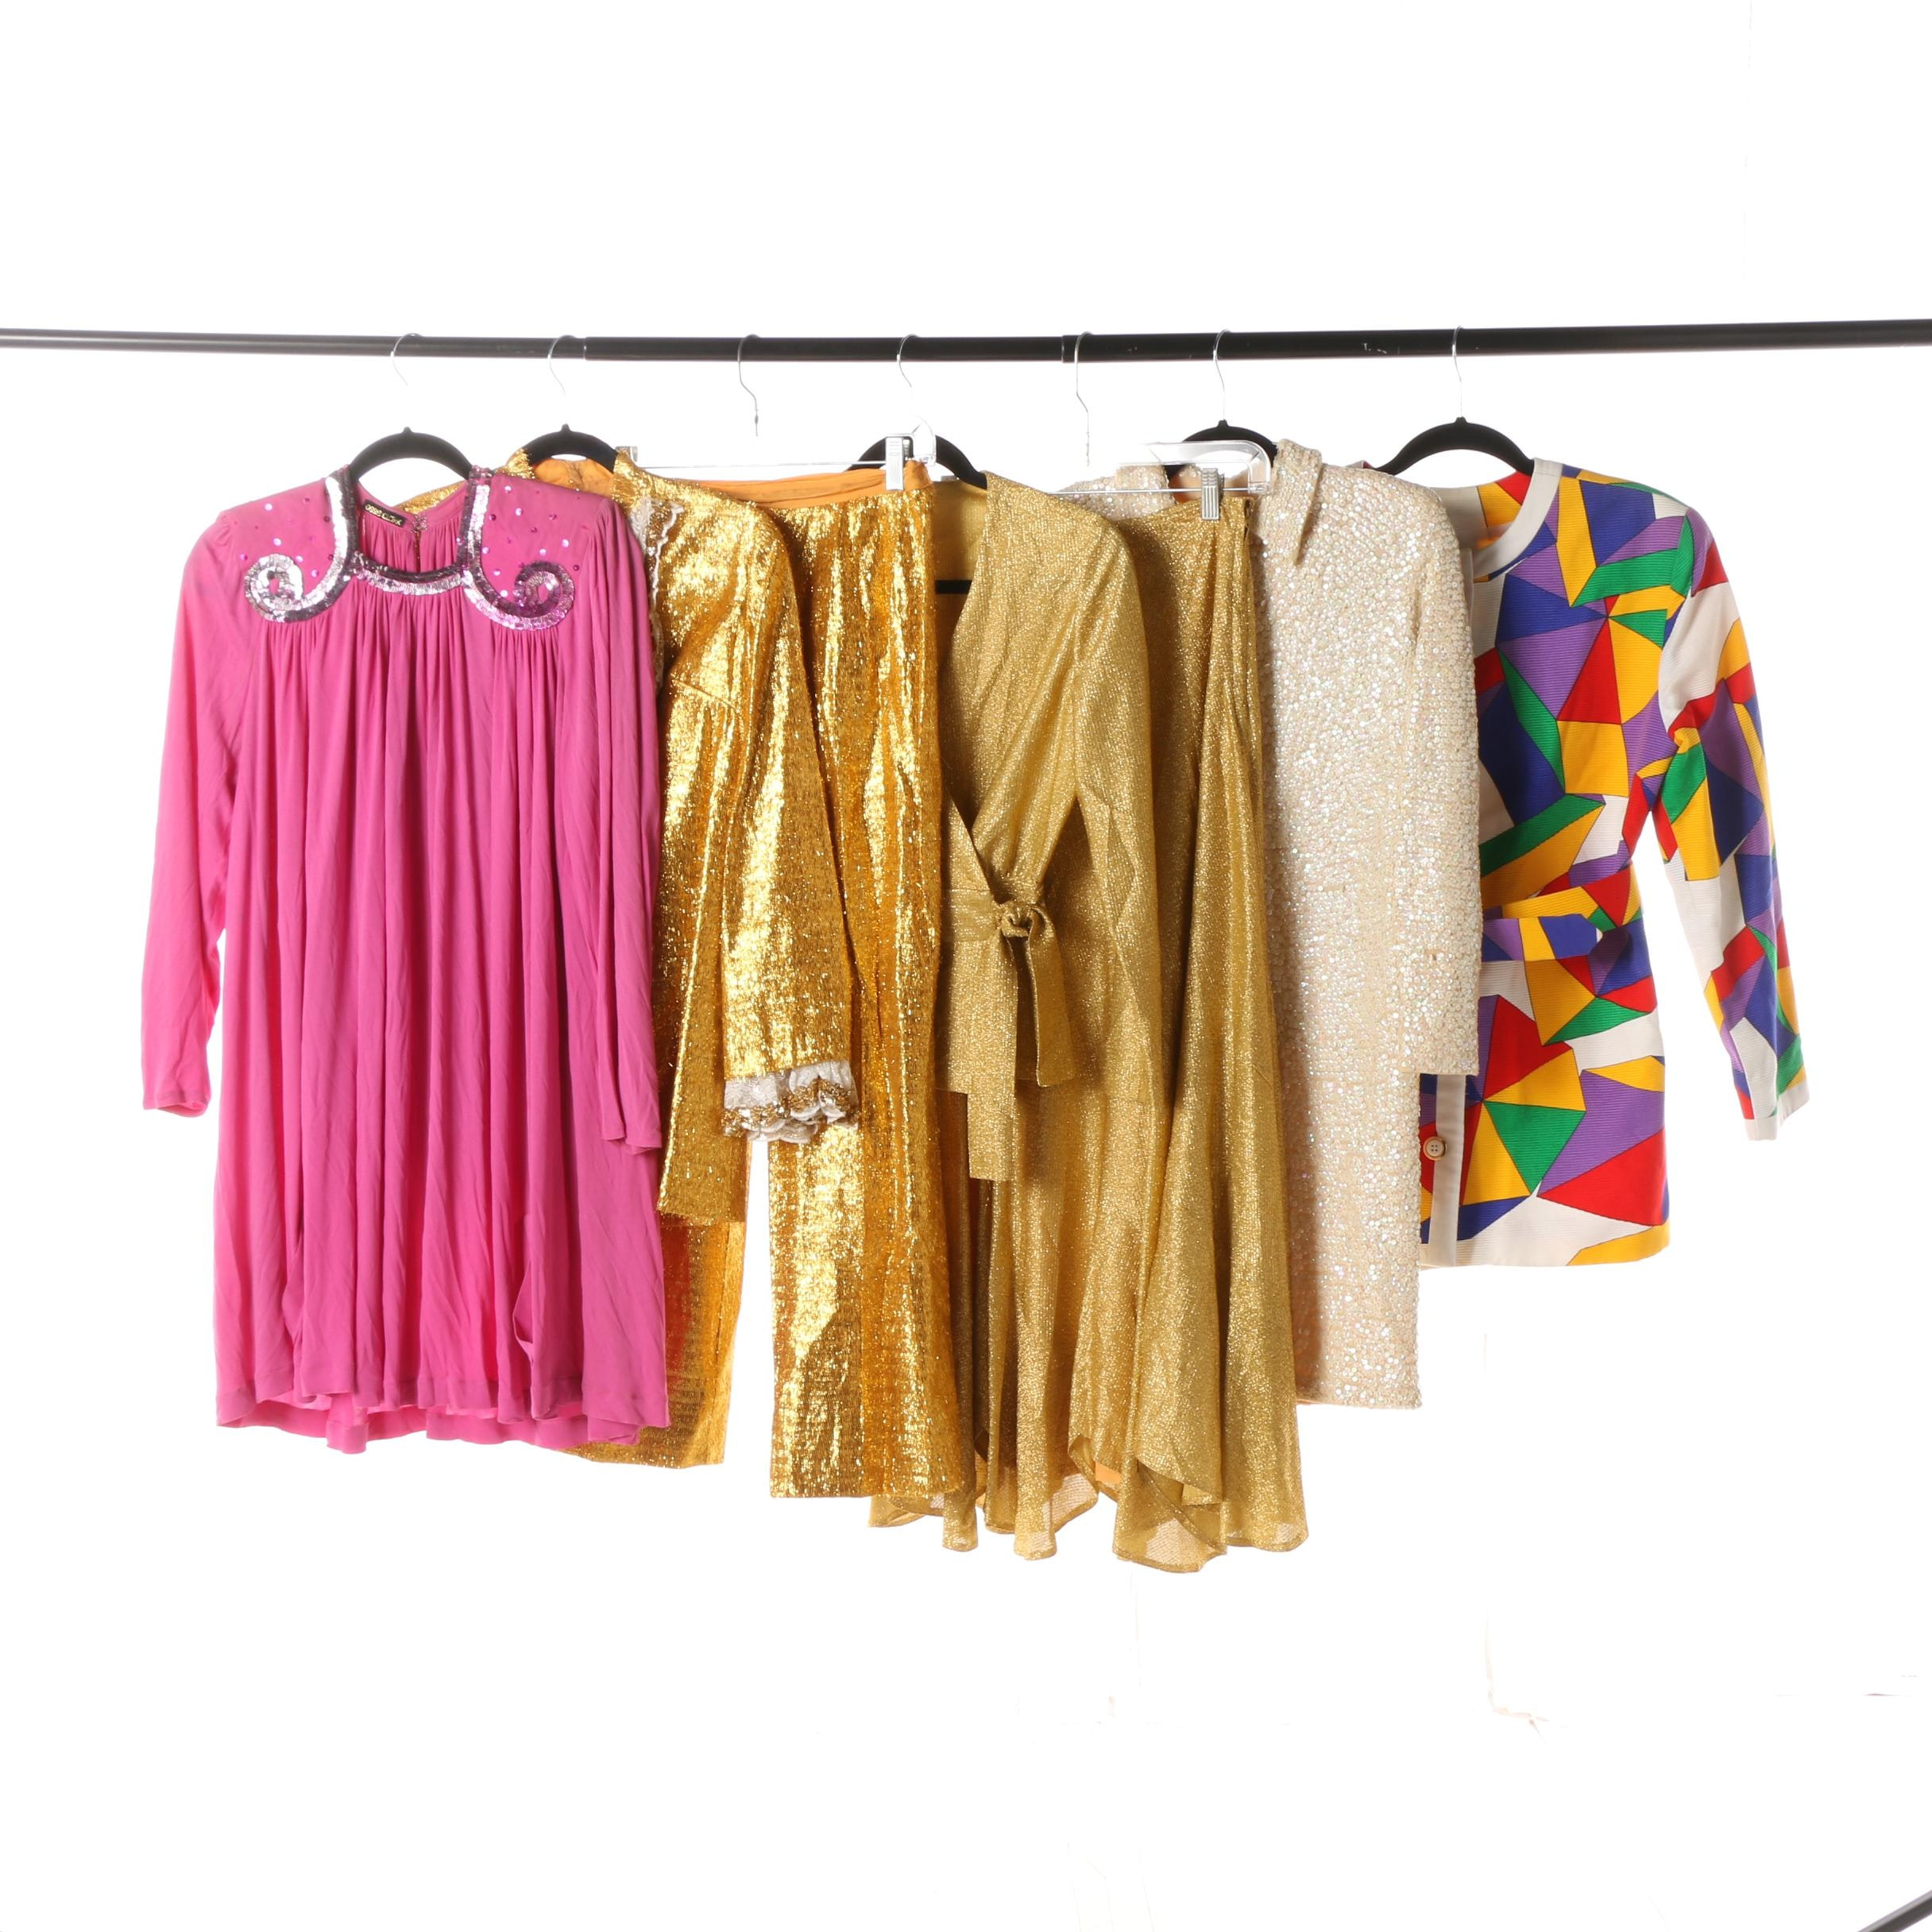 Circa 1980s Sequined Dresses and Separates